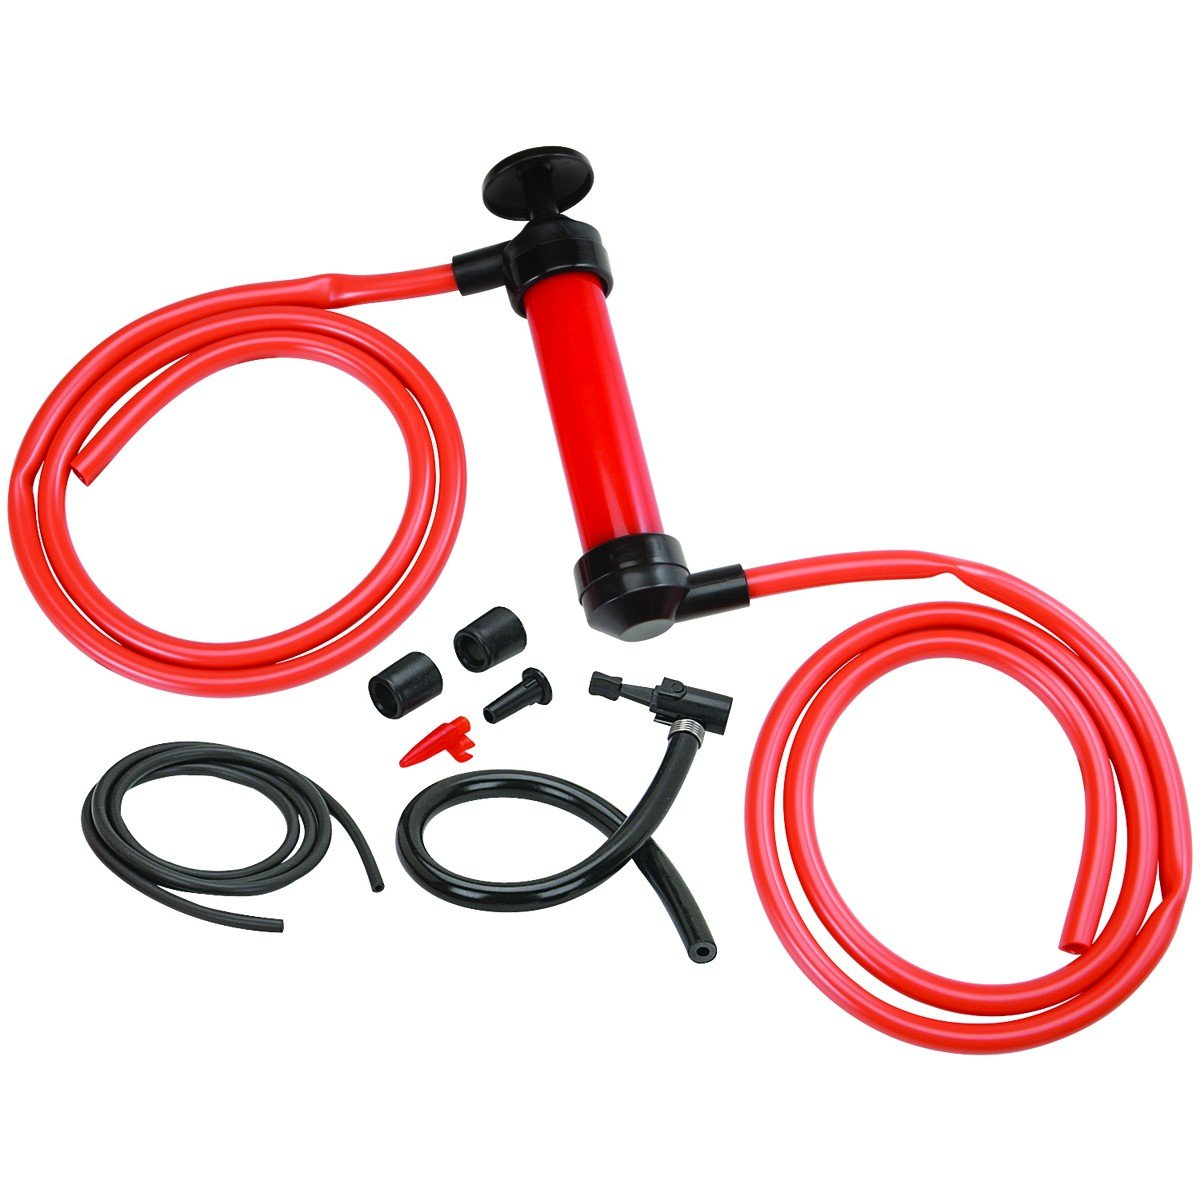 ''ABC Products'' - Multi-Use ~ Transfer Pump and Air Pump - two 51 in long, 1/2 in diameter hoses - Ideal for Changing Oil and Siphoning Gas (Comes With Inflation Needle - Transforms Into Air Pump)